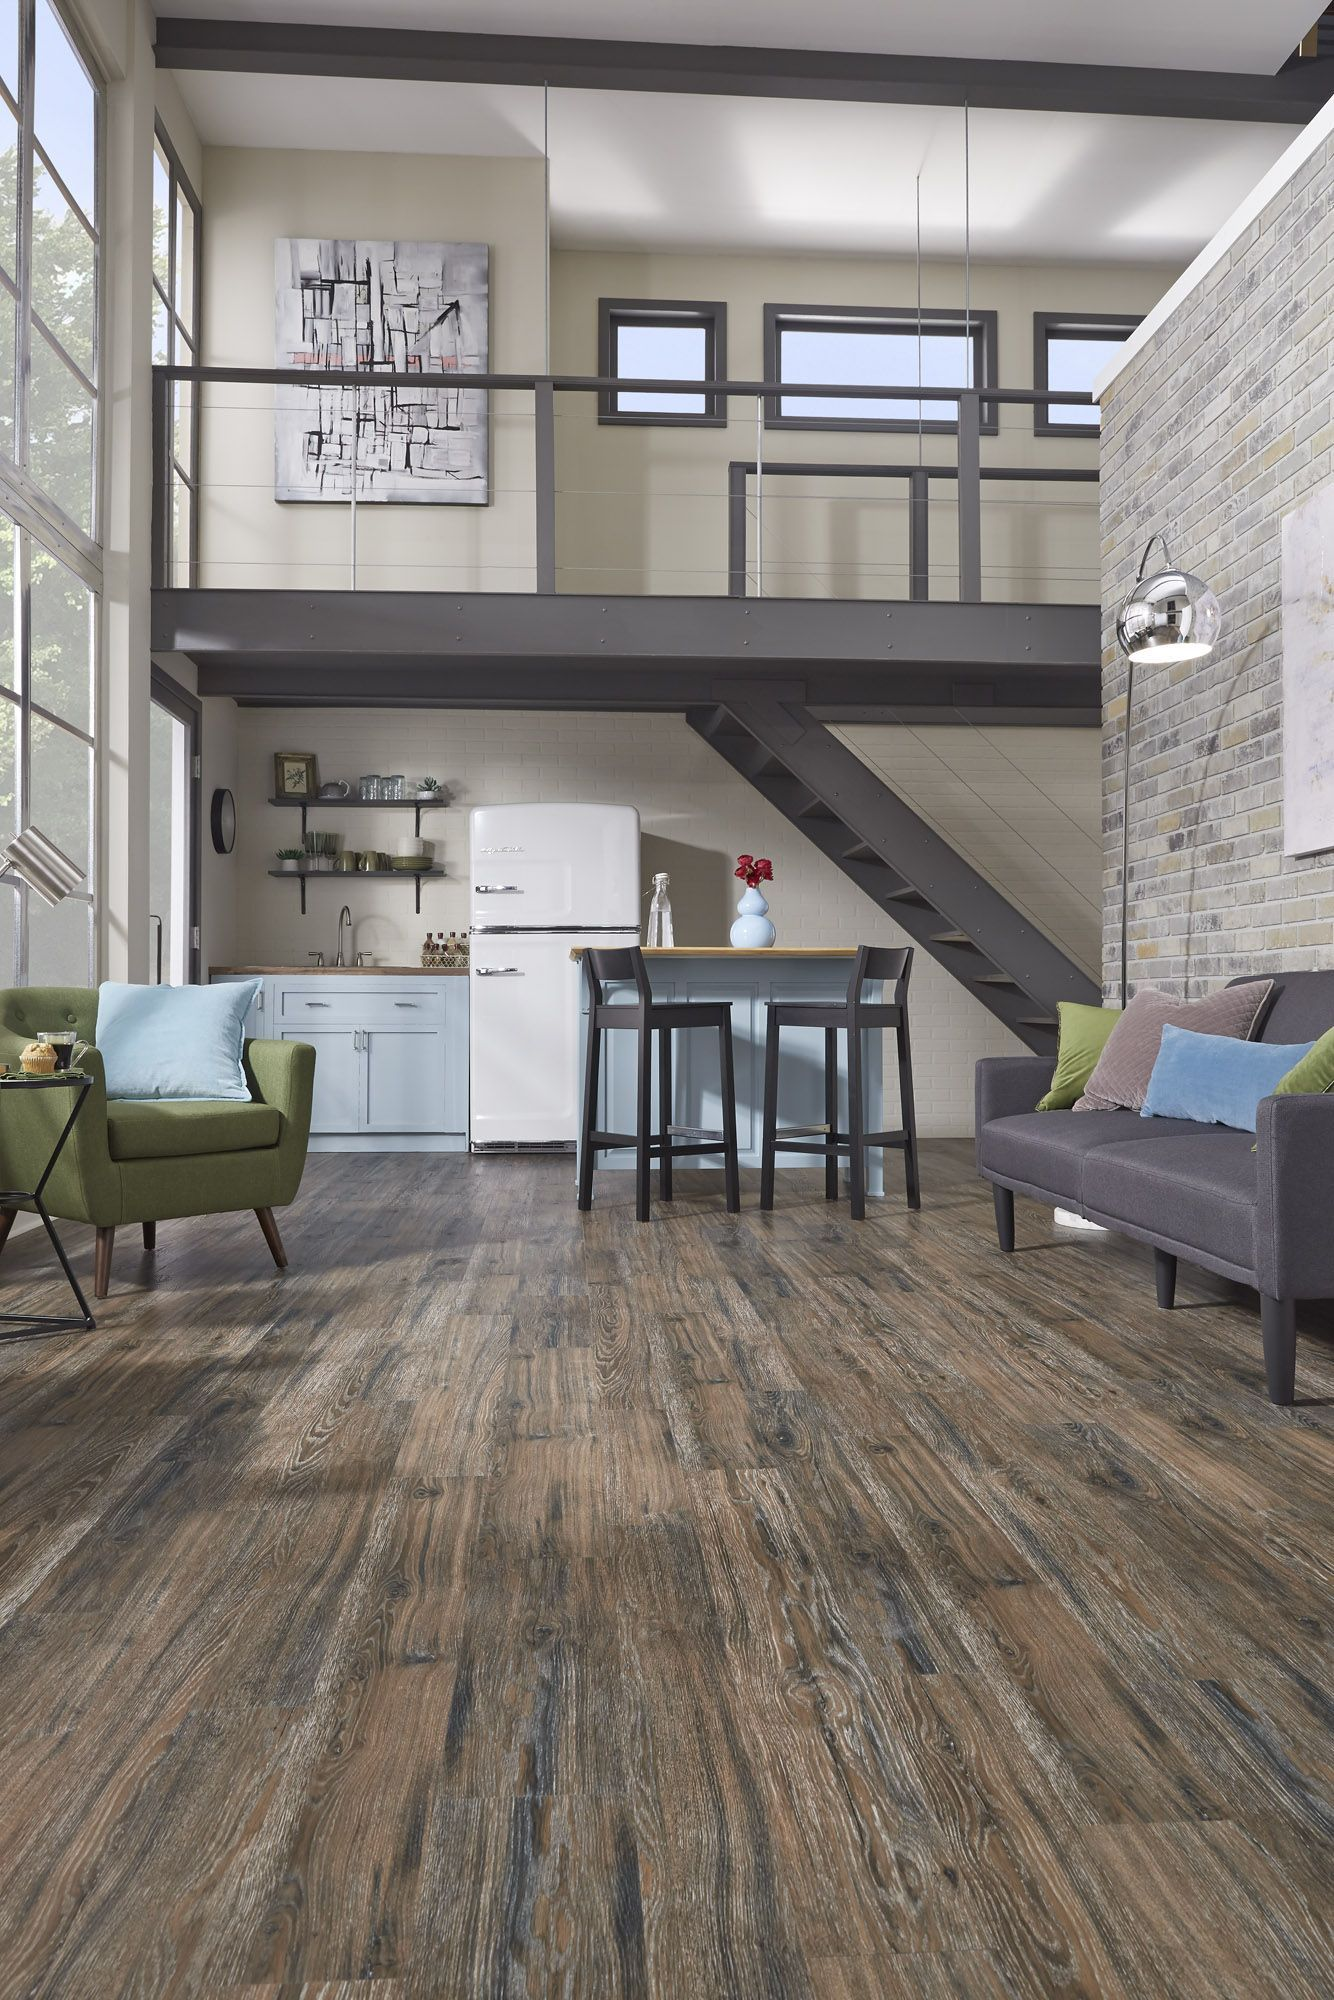 Waterproof Laminate Flooring Pictures, Ideas & Expert